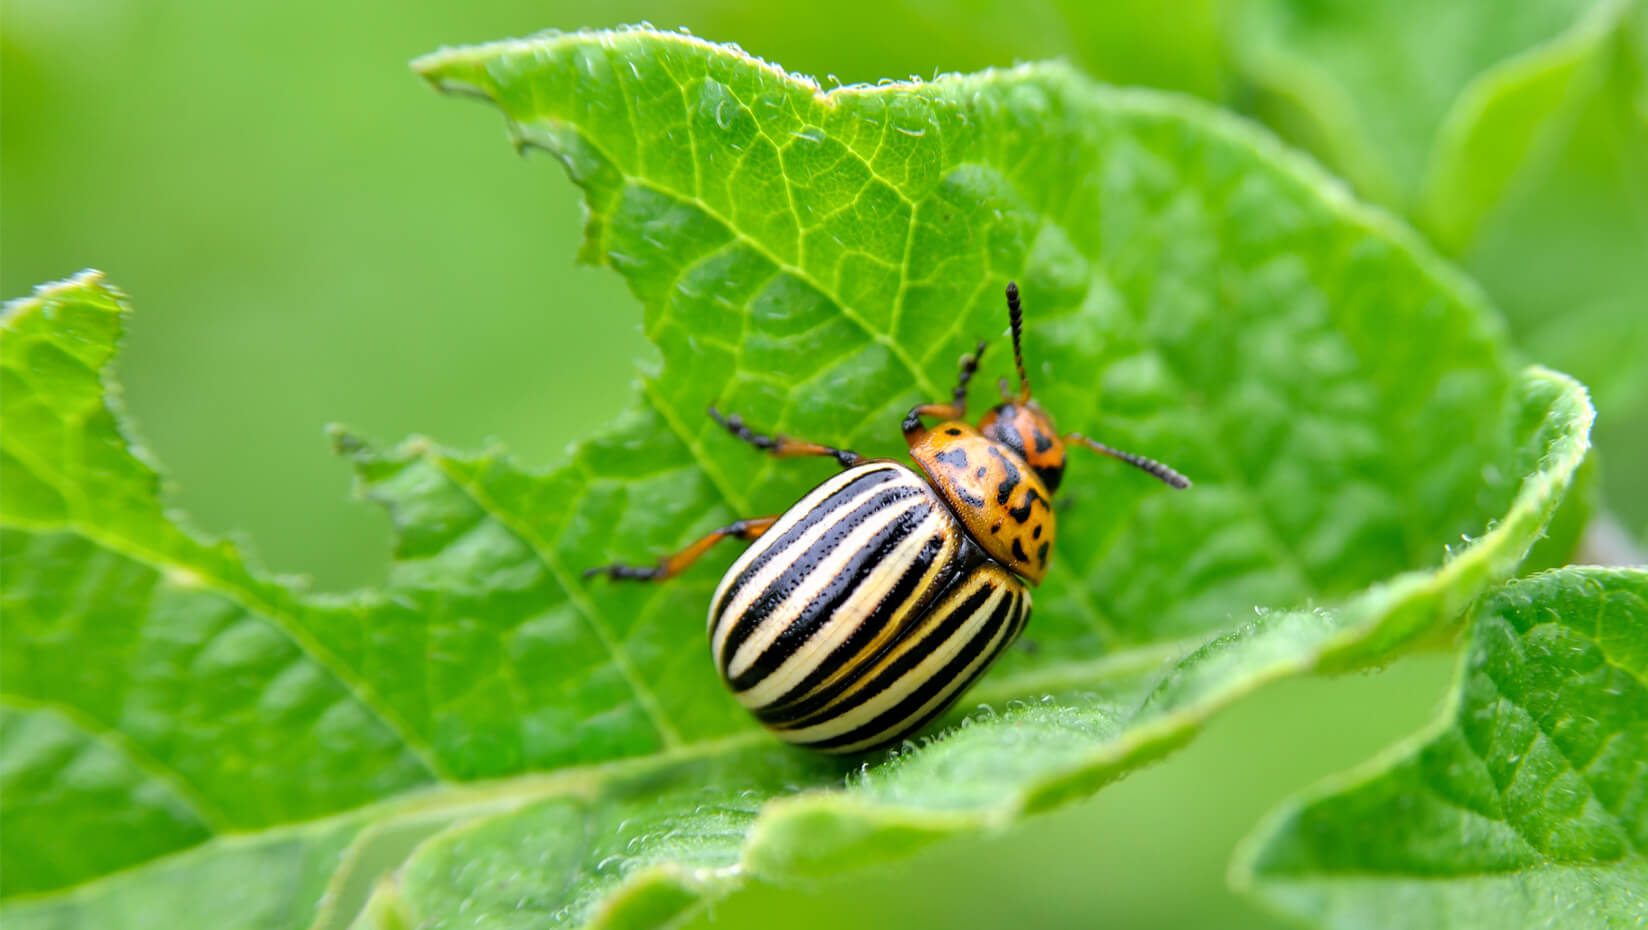 featured image for To protect crops, farmers could promote potato beetle cannibalism